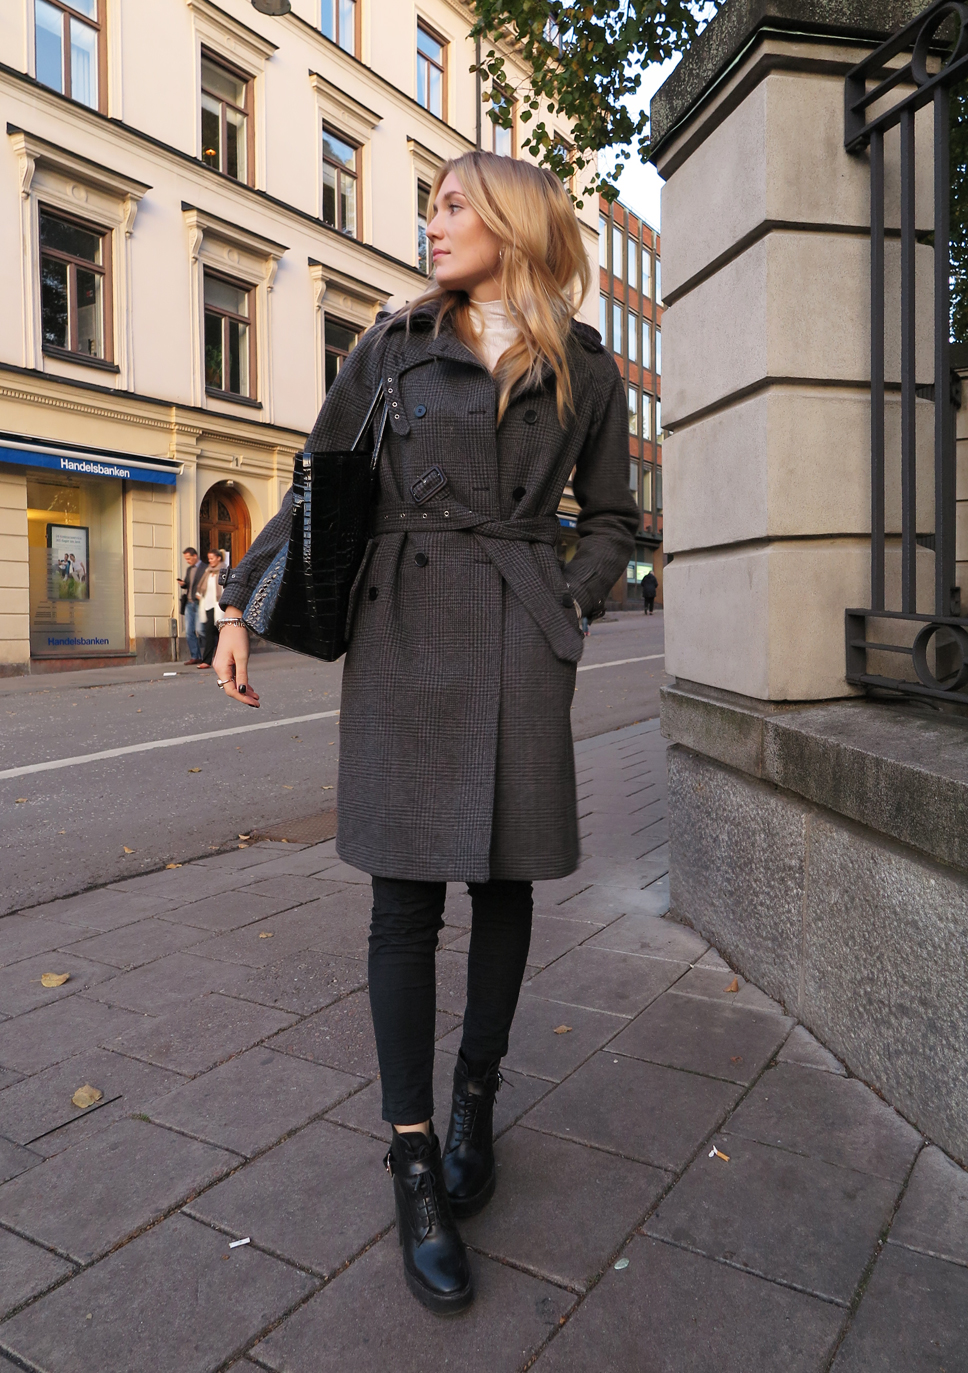 Josefin Dahlberg is wearing a coat with belt from Gant, bag from & other stories and the boots are from Zara